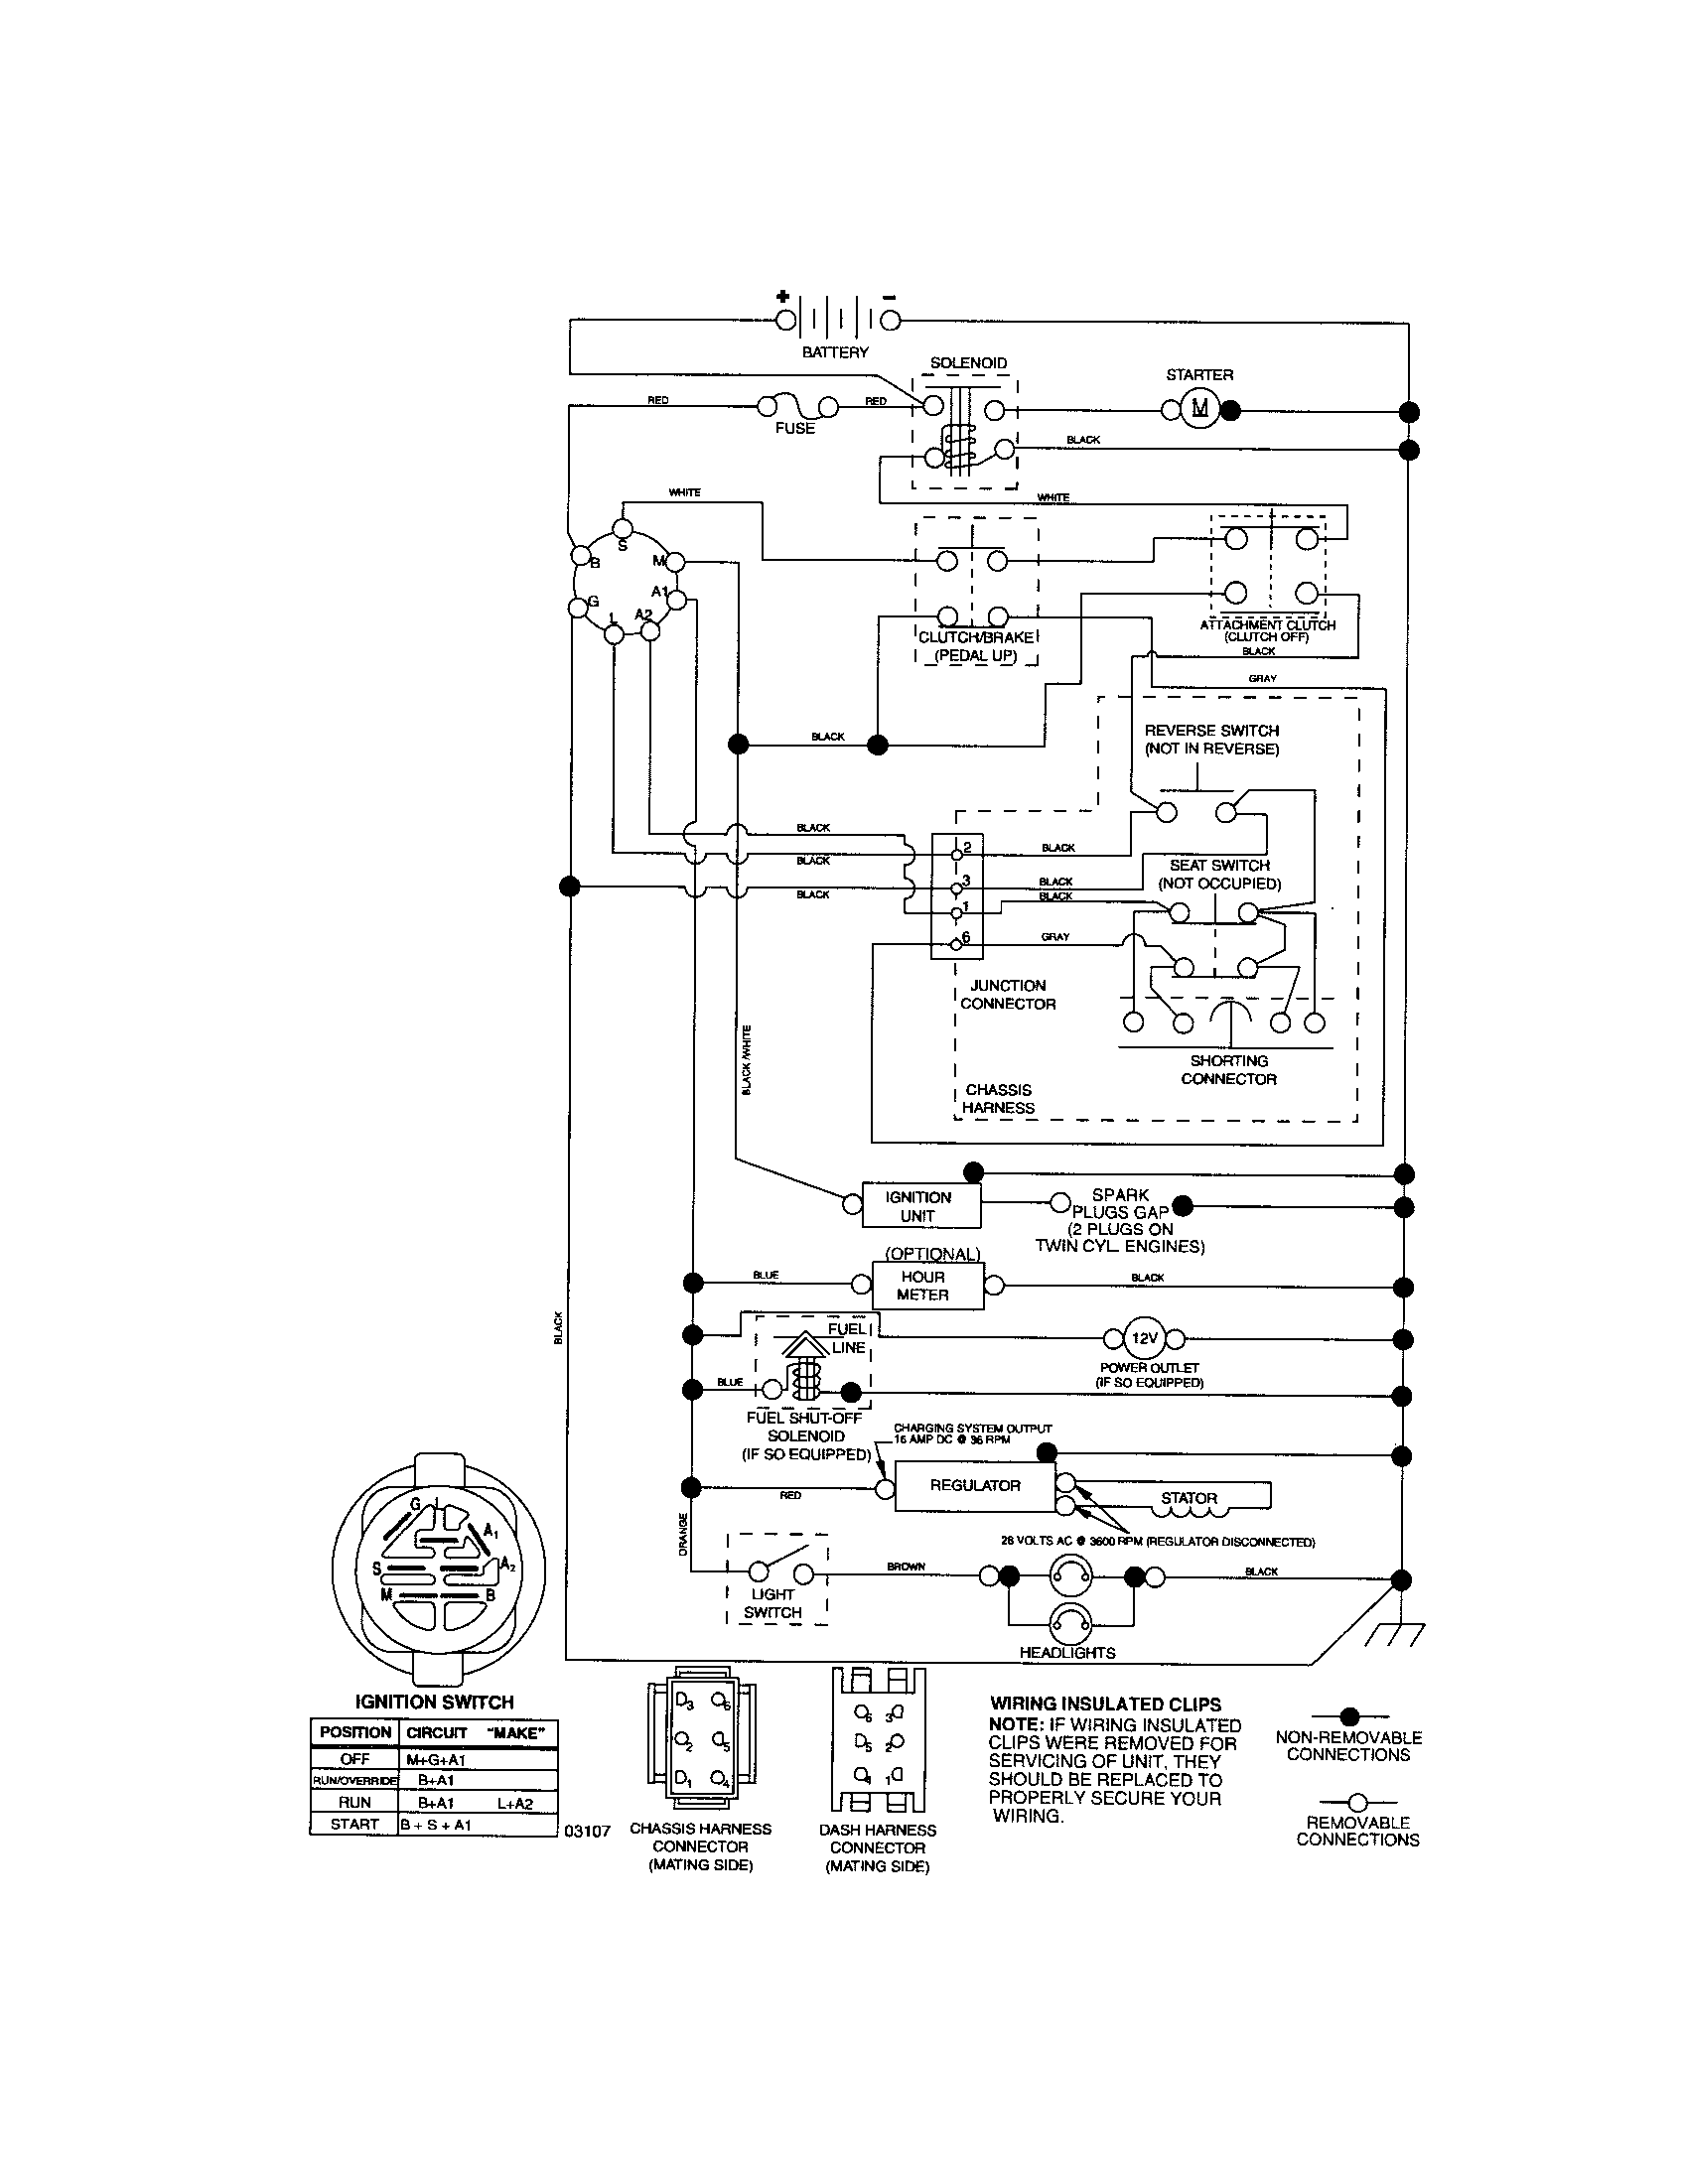 6af5f1447fd13c8443376822ddc1e105 craftsman riding mower electrical diagram wiring diagram Basic Lawn Tractor Wiring Diagram at fashall.co